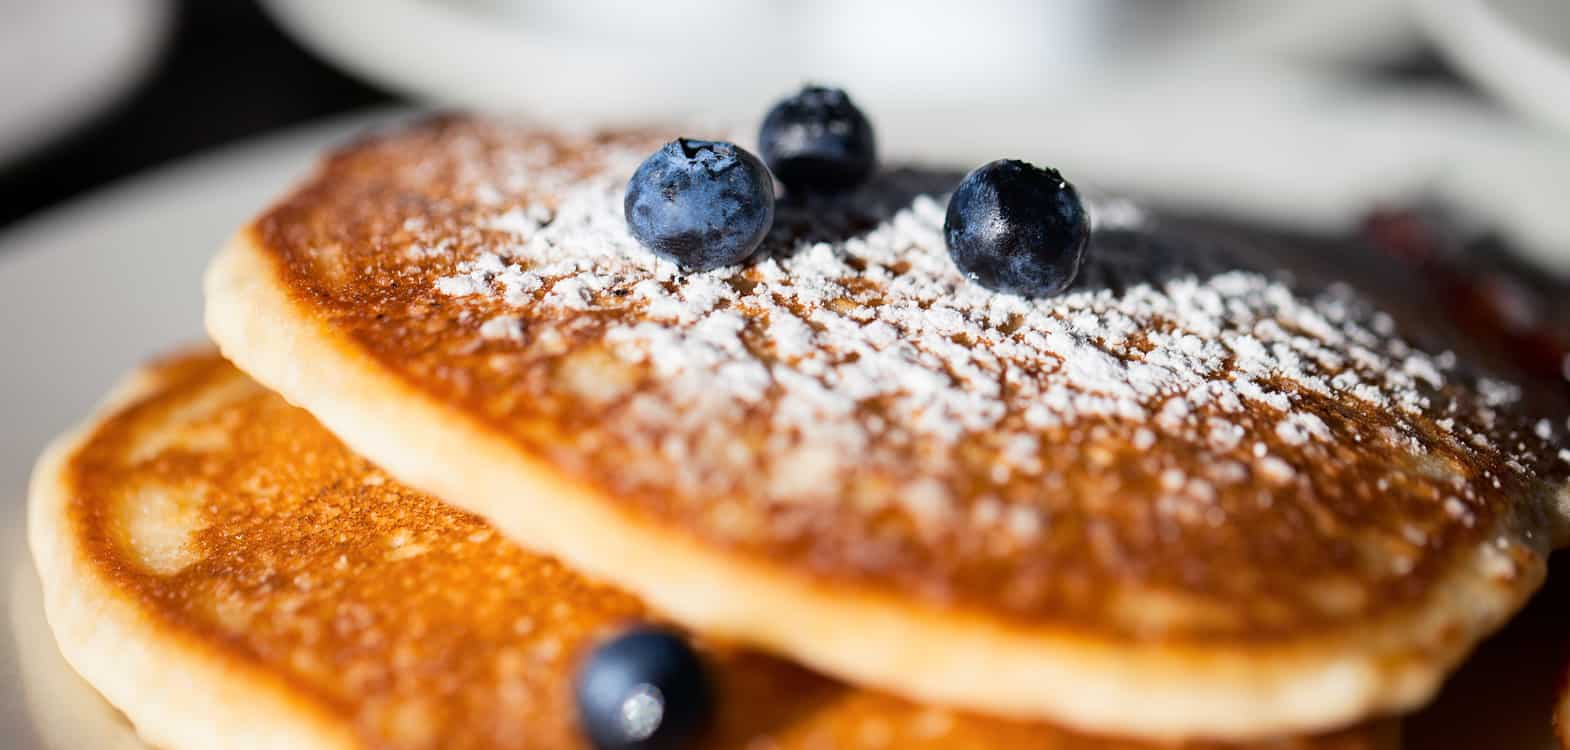 stack of pancakes with powdered sugar and blueberries - a special breakfast at Firhall B&B